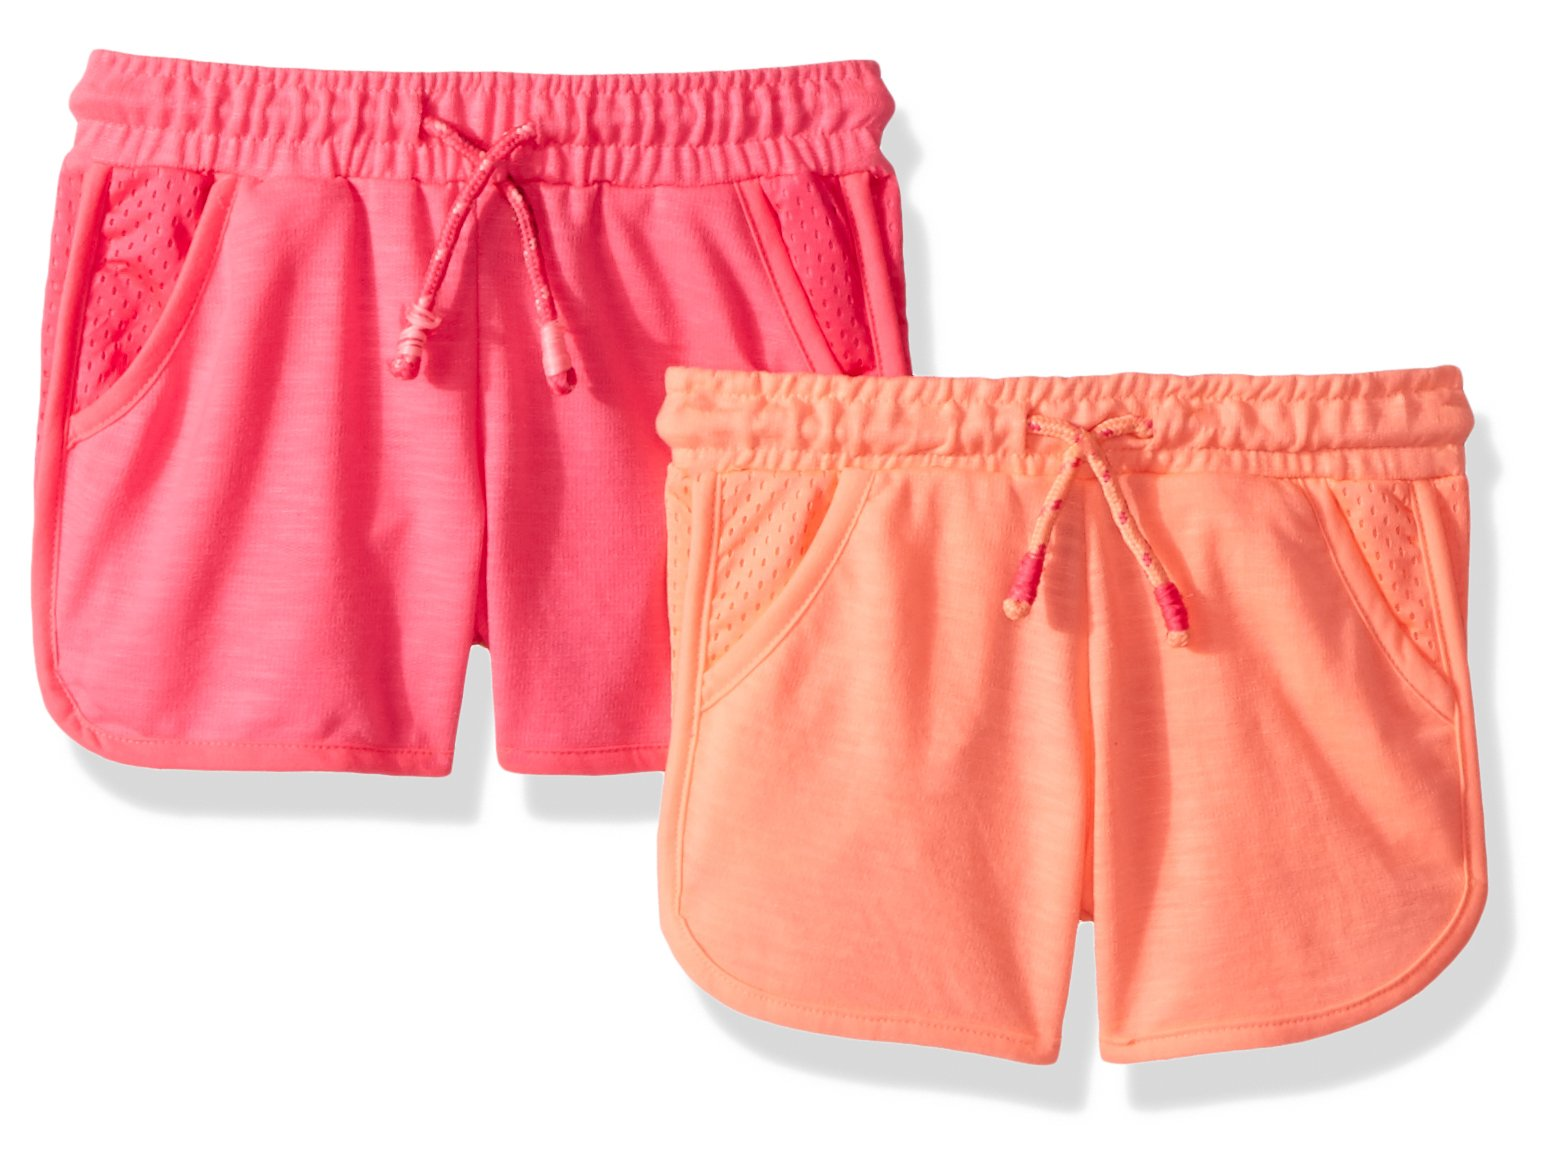 Limited Too Big Girls' 2 Pack Short, Mesh Trim Neon Pink with Neon Light Coral Multi, 14/16